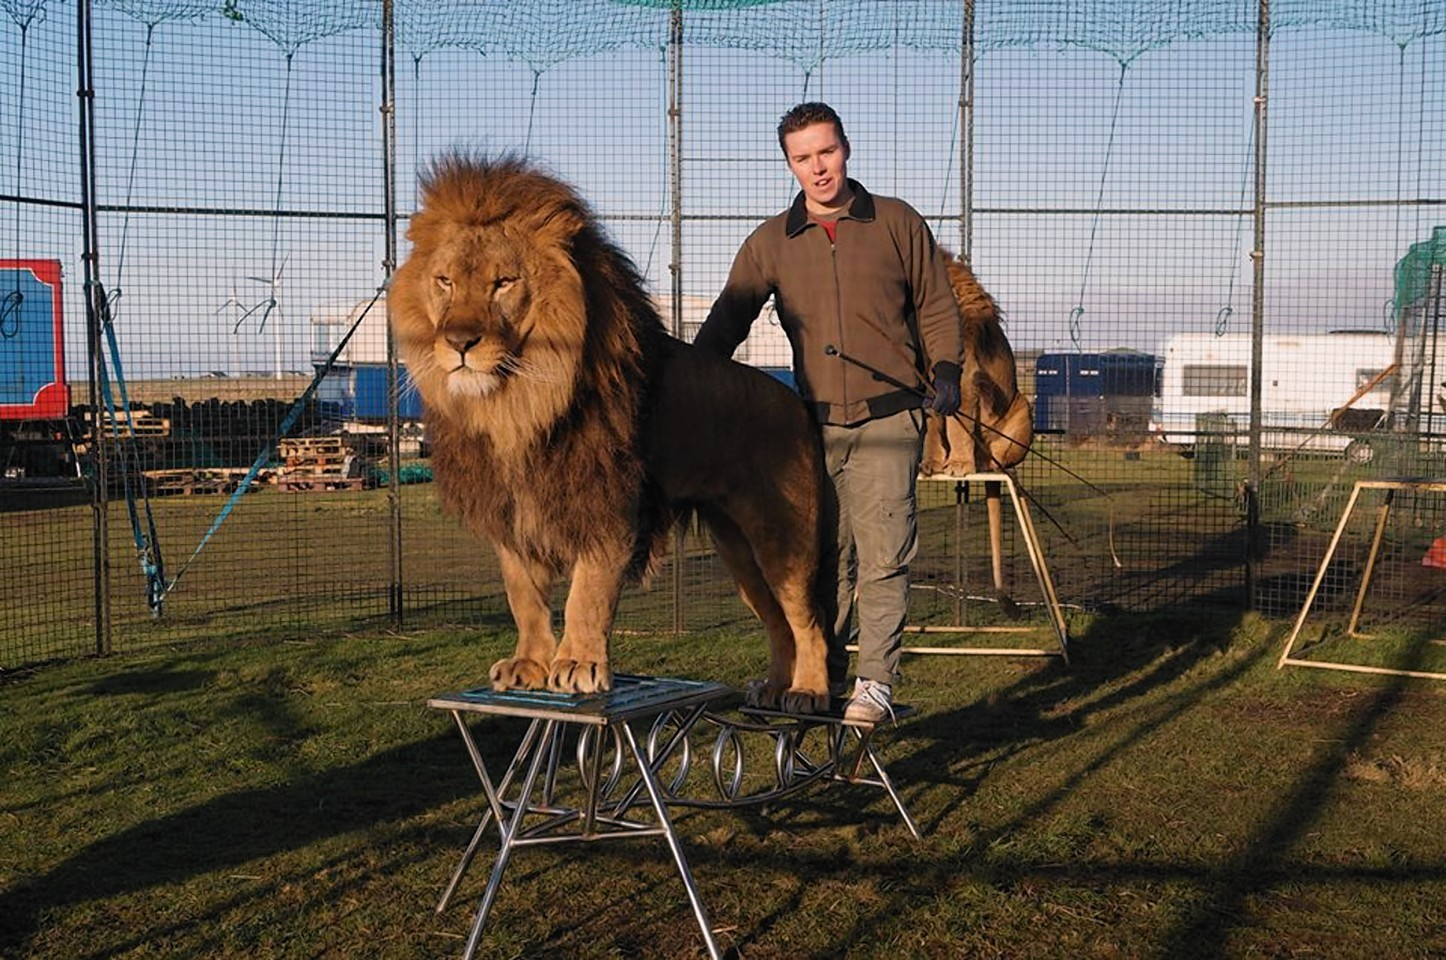 The only remaining lion tamer in Britain, Thomas Chipperfield, kept two lions and three tigers in cages on a croft in Fraserburgh